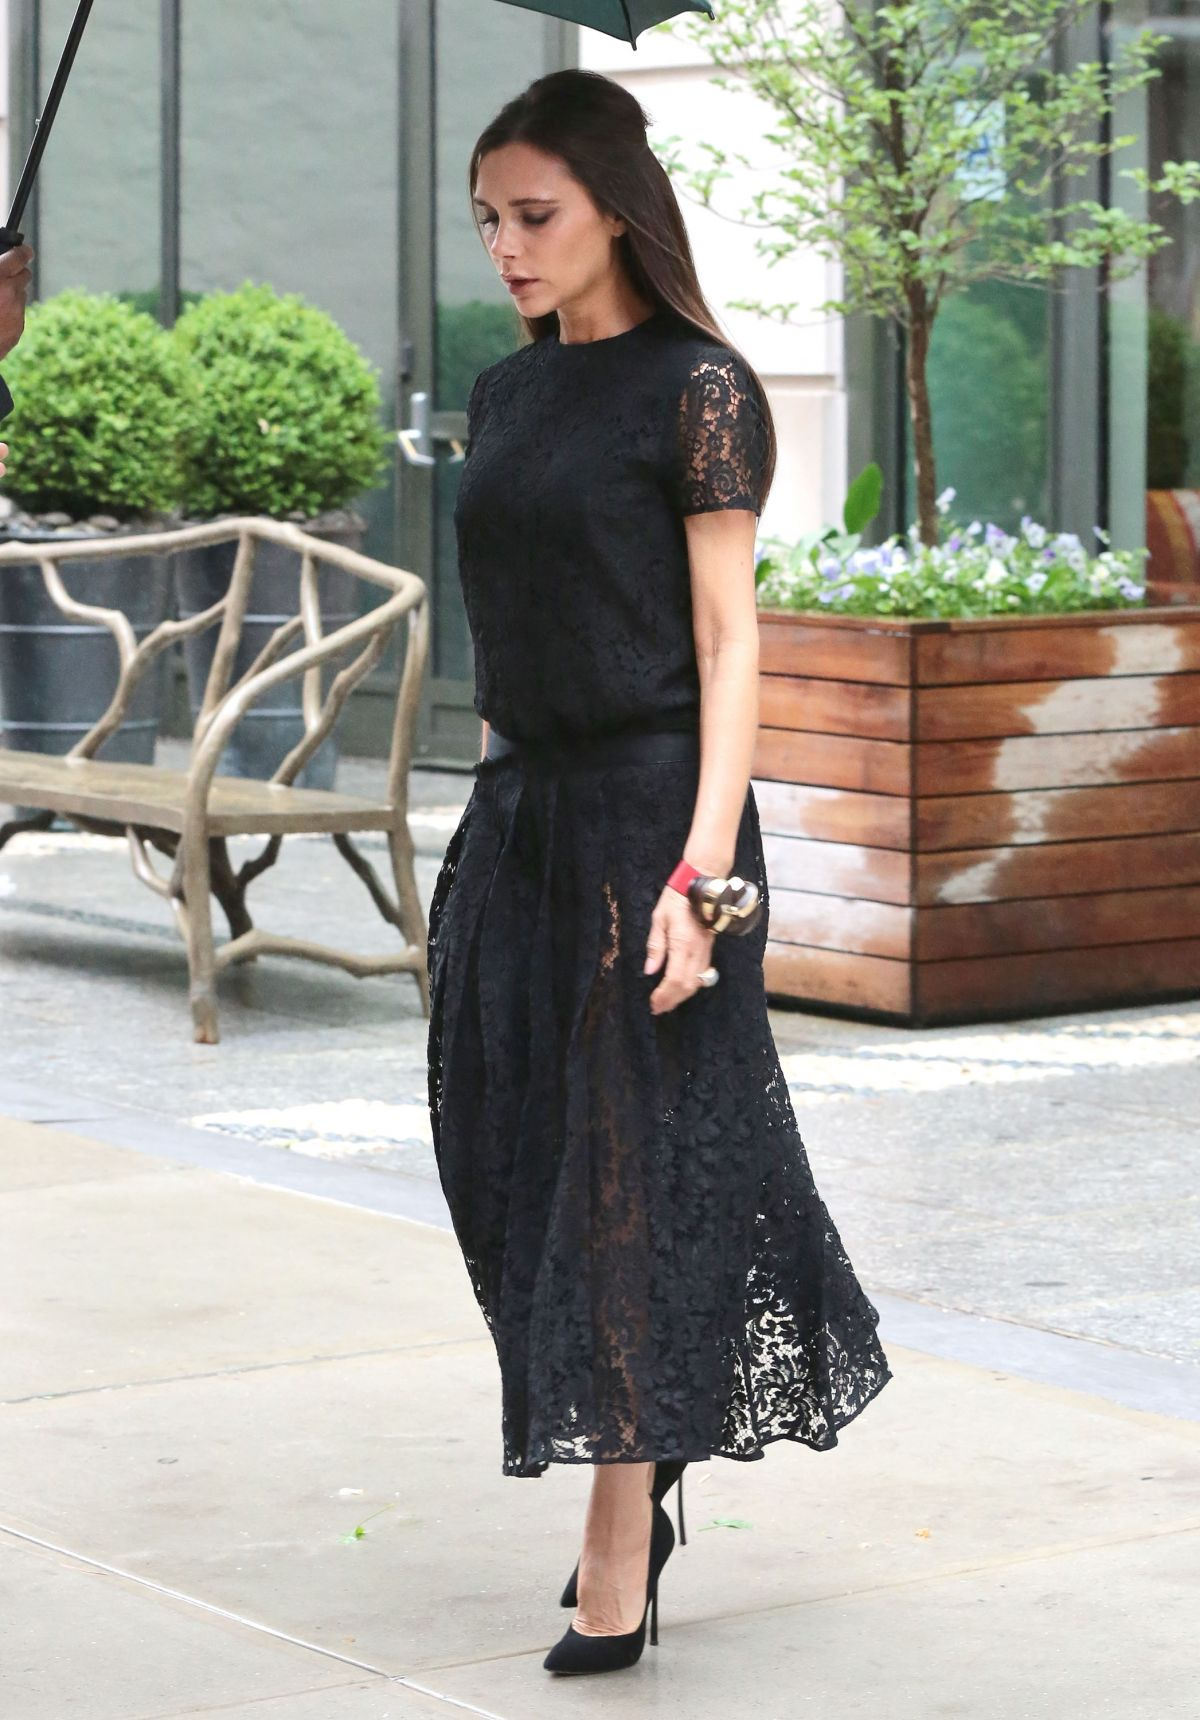 victoria-beckham-out-and-about-in-new-york-06-02-2015_4